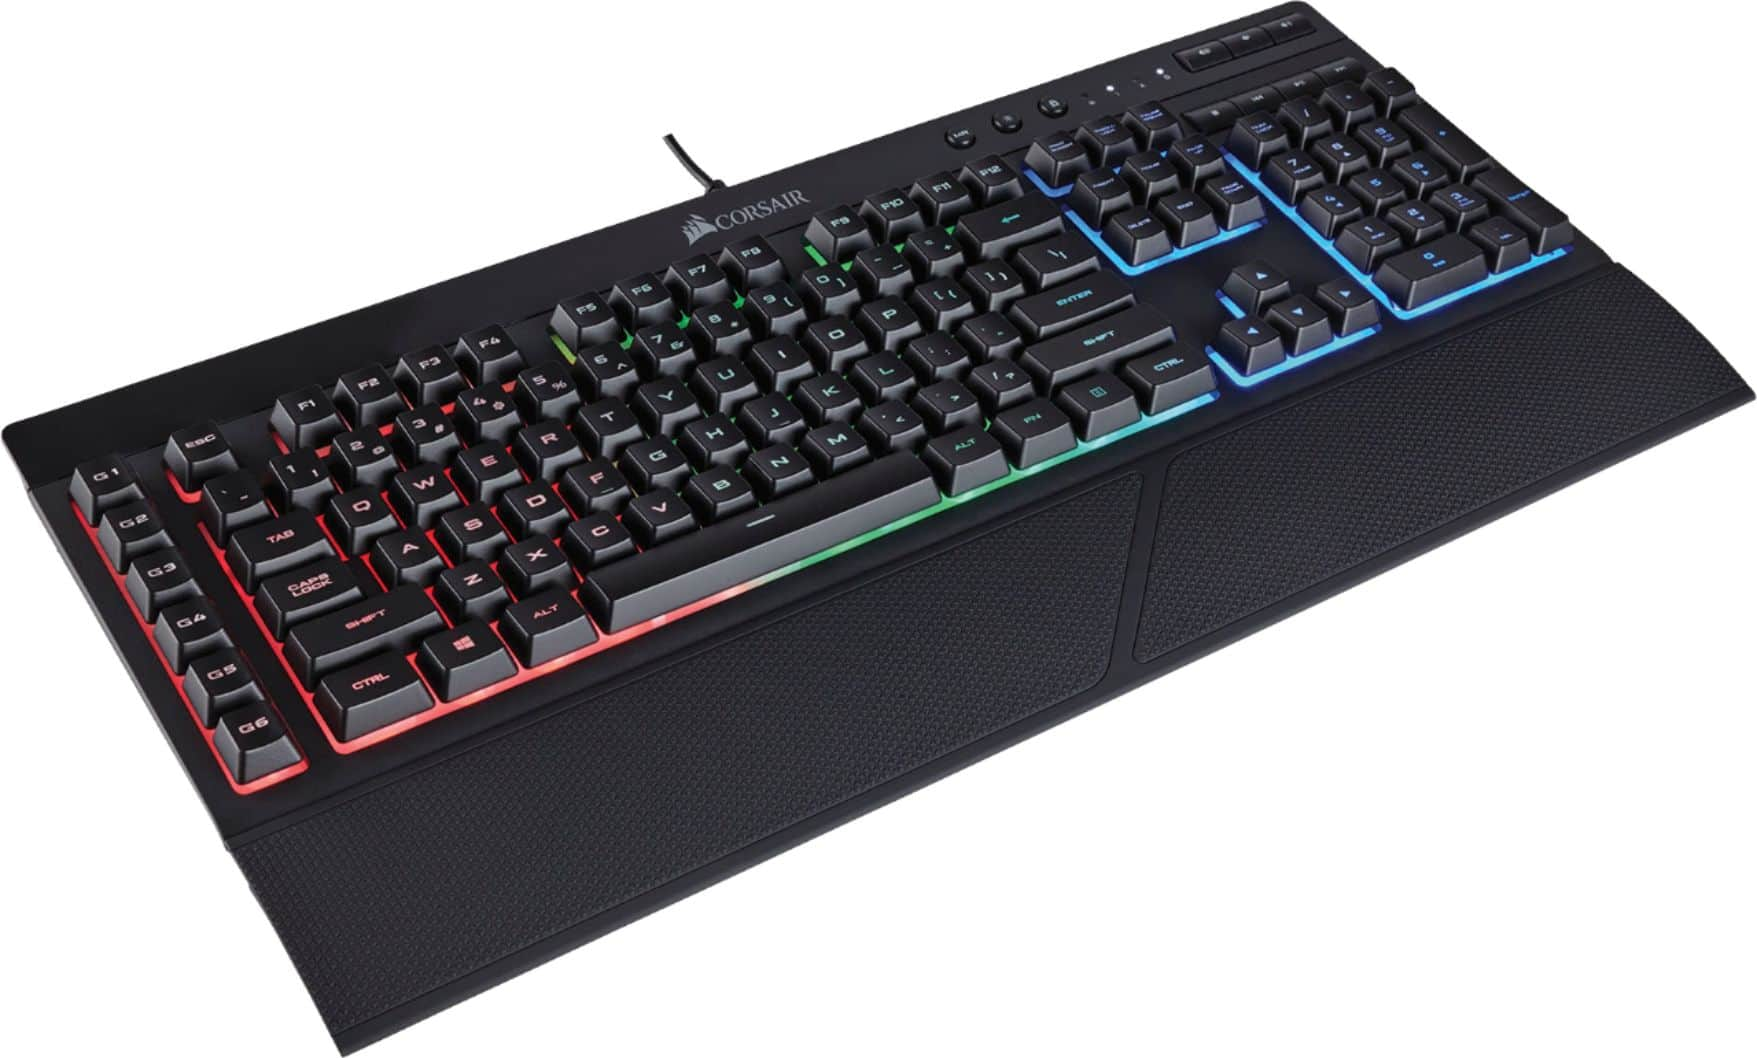 CORSAIR (Refurbished) K55 Wired Gaming Membrane Keyboard with RGB Backlighting for $24.99